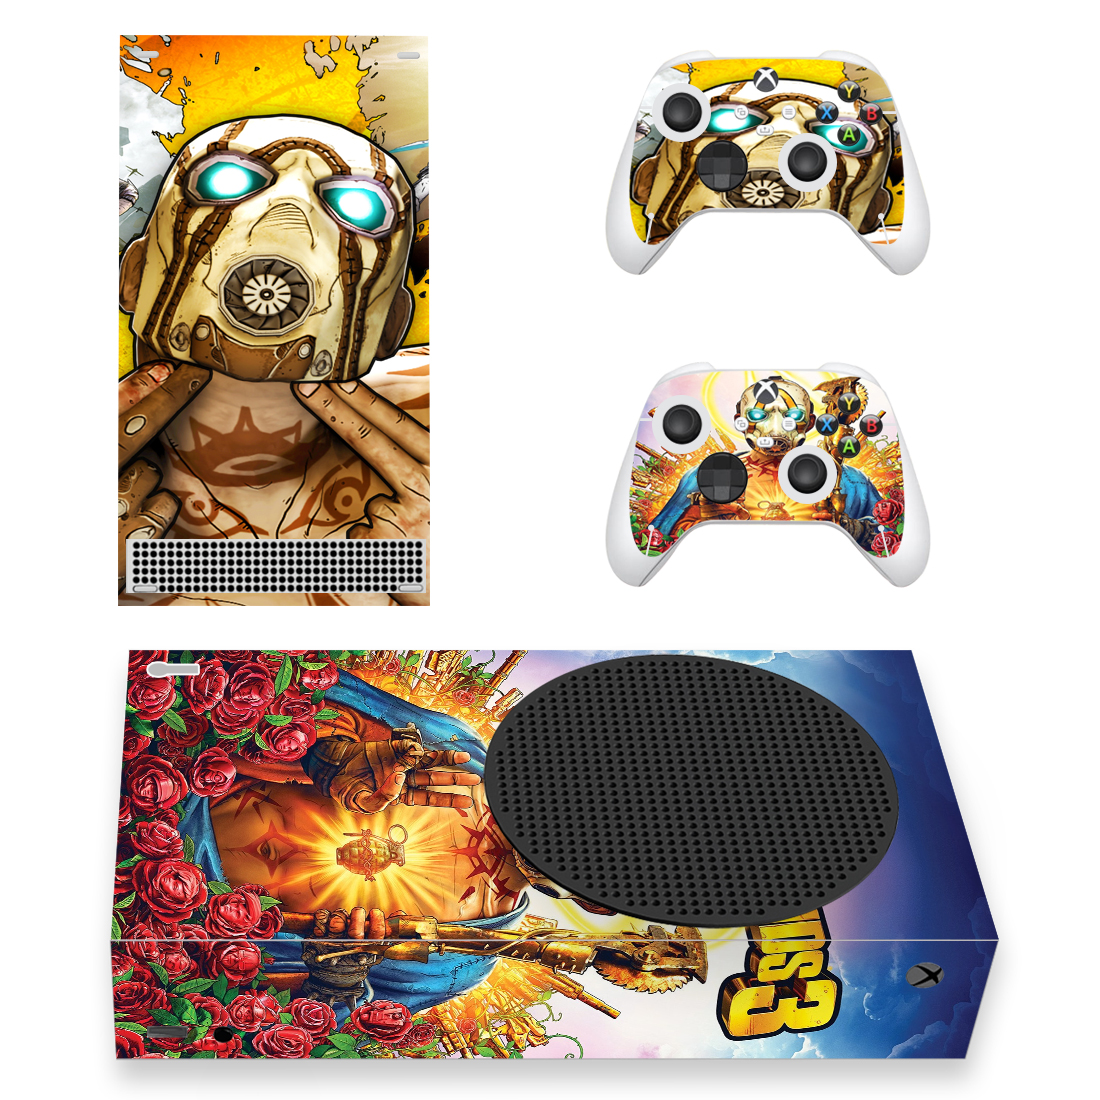 Borderlands 3 Skin Sticker For Xbox Series S And Controllers